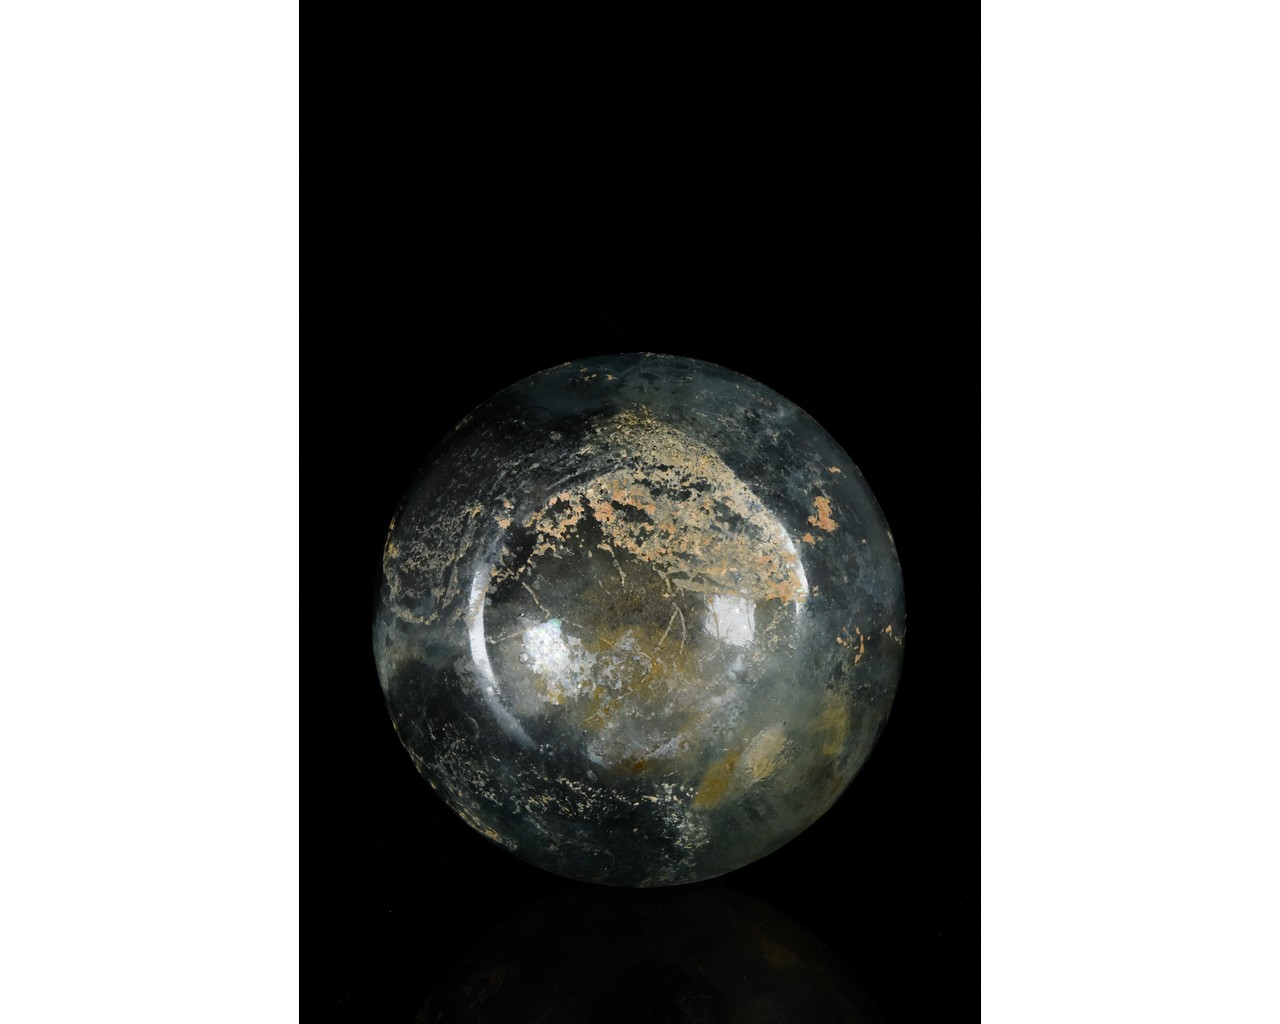 TALL ROMAN GLASS FLASK WITH TRAIL - Image 4 of 8